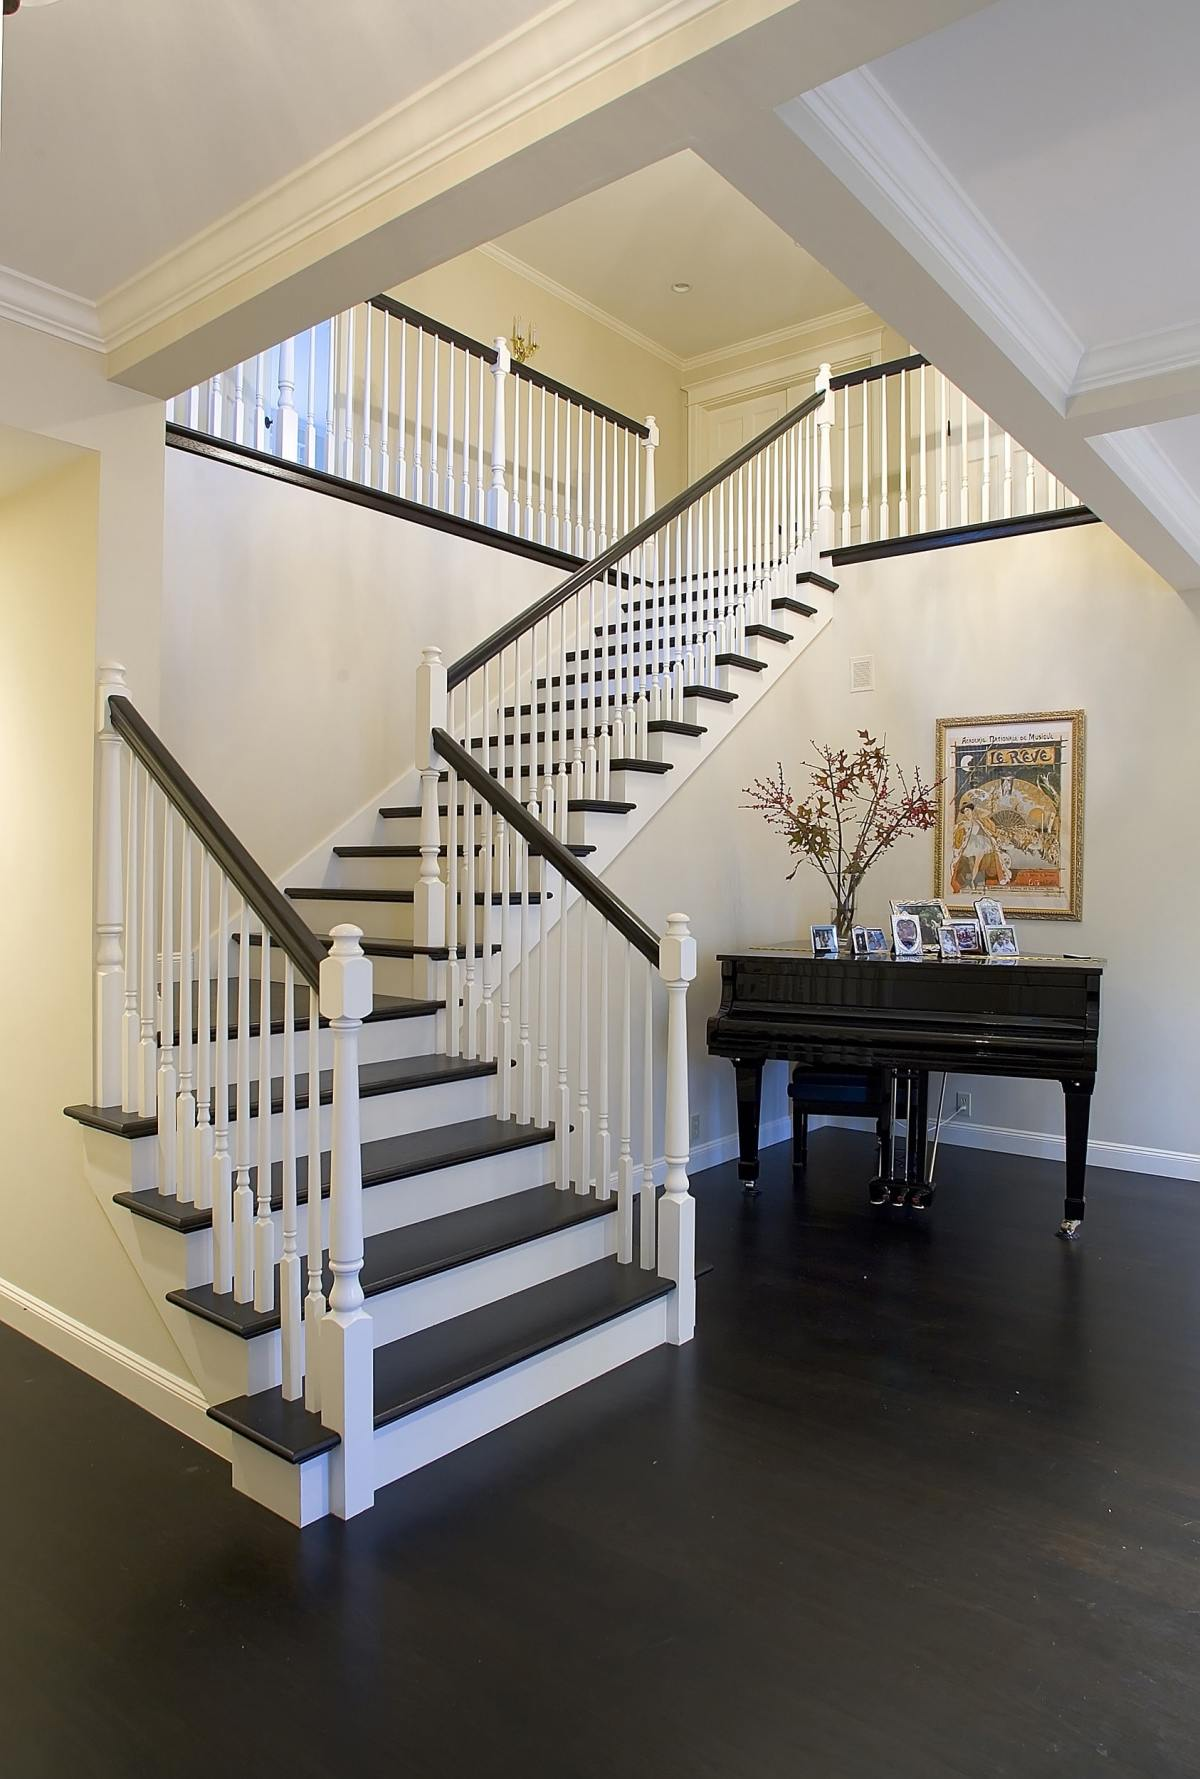 white corner staircase with black wood steps and black handrail going up around a black grand piano